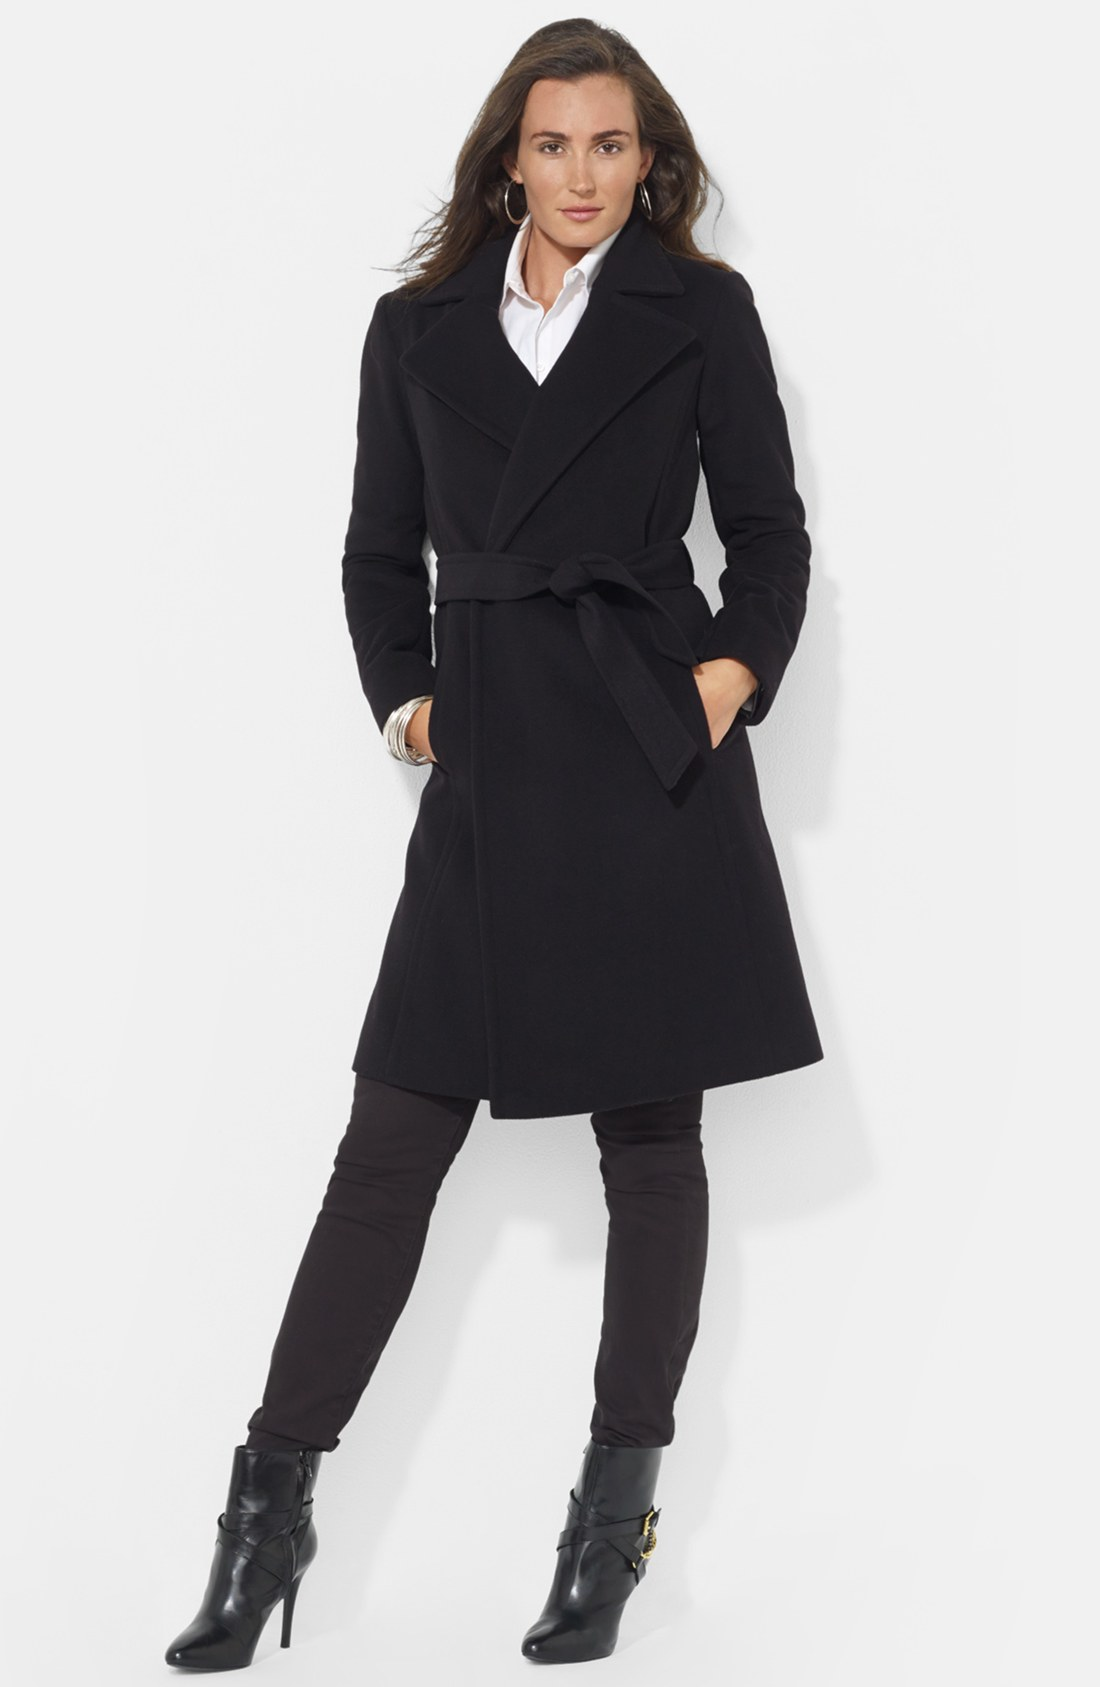 Shop for belted wool wrap coat online at Target. Free shipping on purchases over $35 and save 5% every day with your Target REDcard.